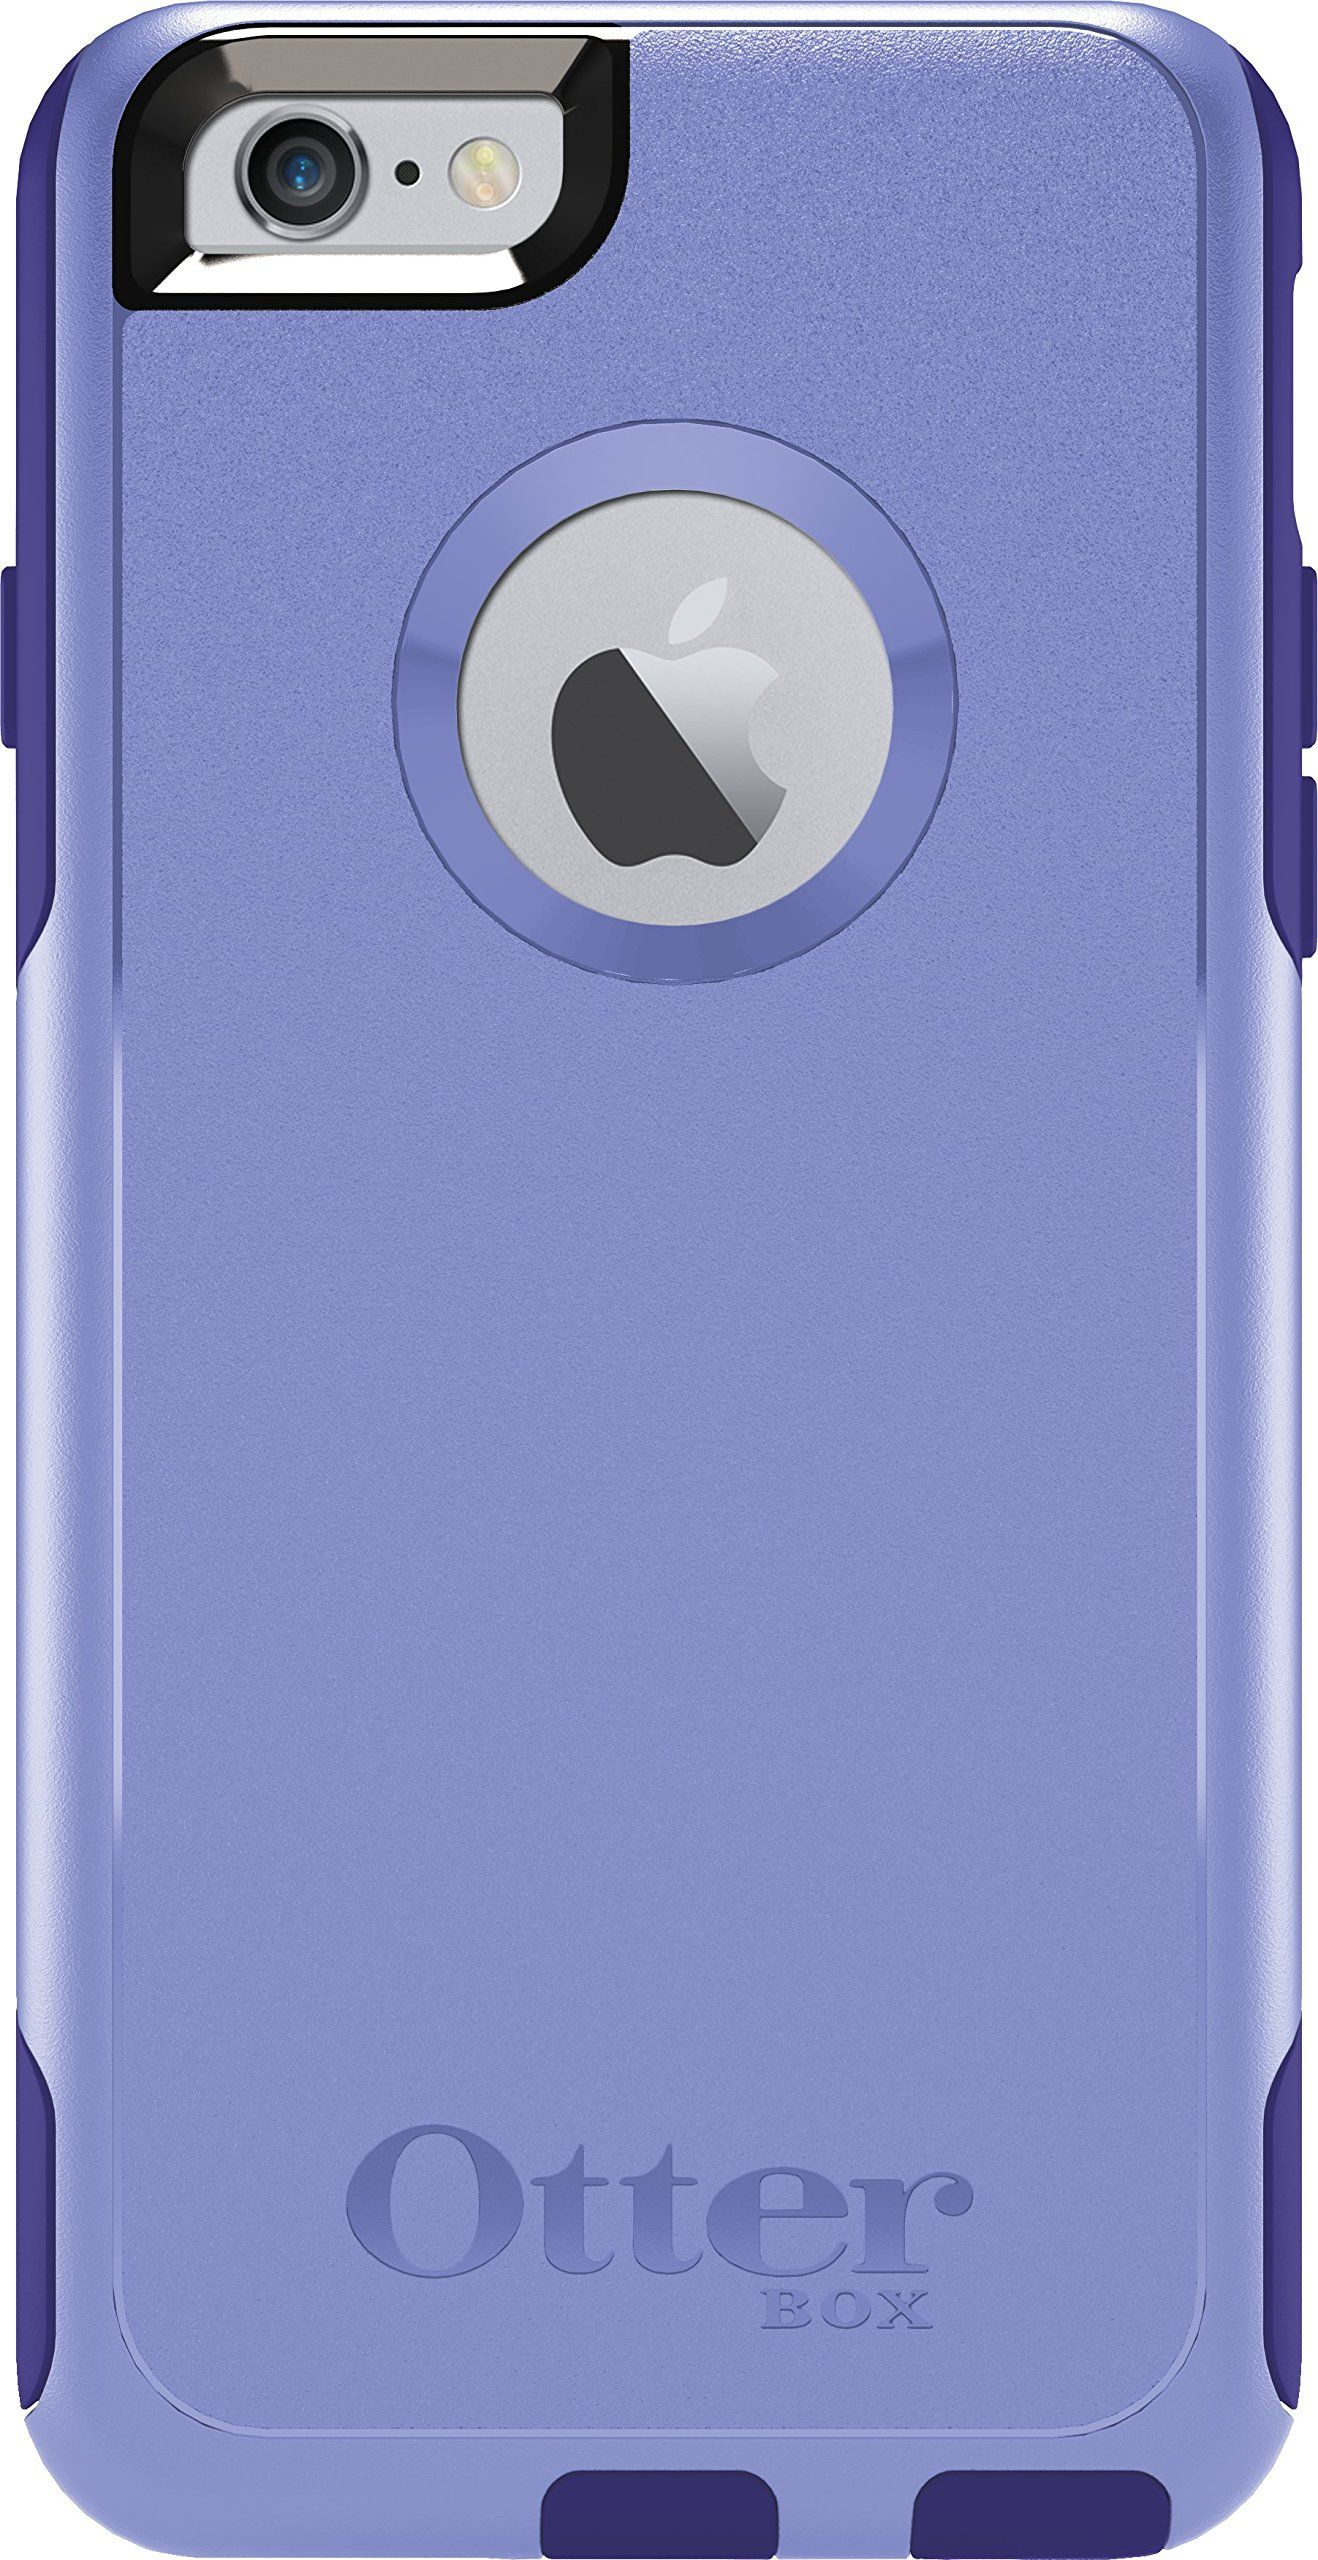 buy popular 604b7 e1037 Amazon.com: OtterBox COMMUTER iPhone 6/6s Case - Frustration-Free ...